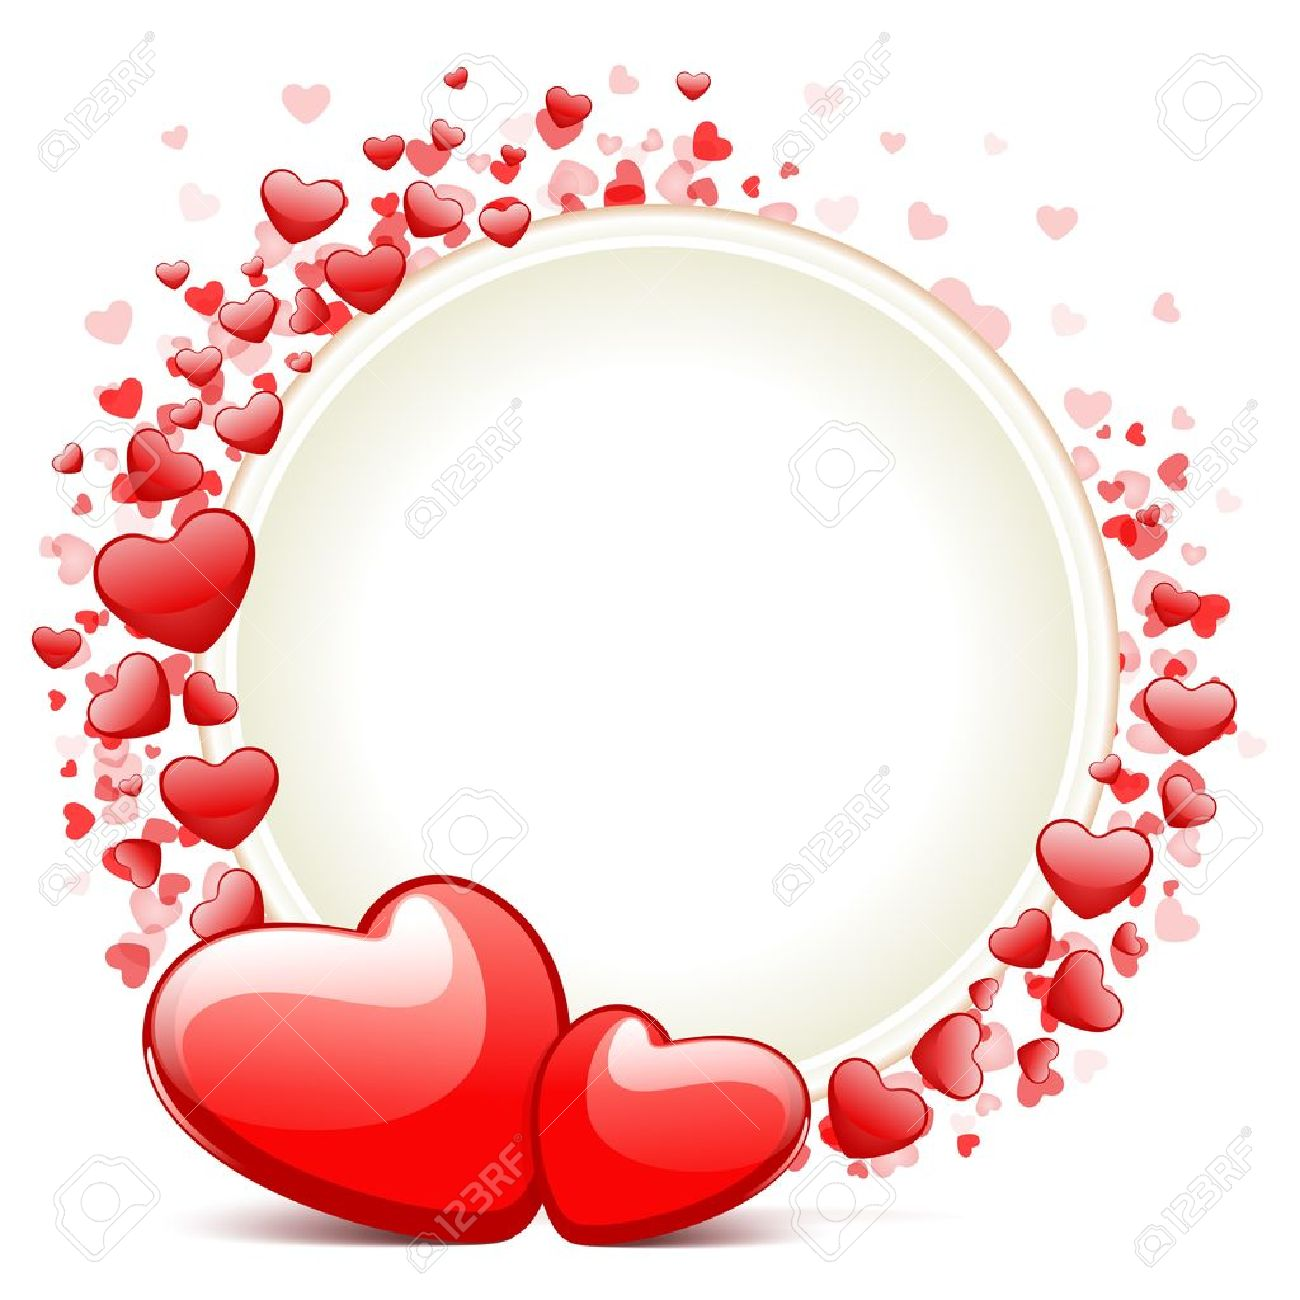 Hearts With Card Frame Valentine Day Vector Background Royalty Free ...